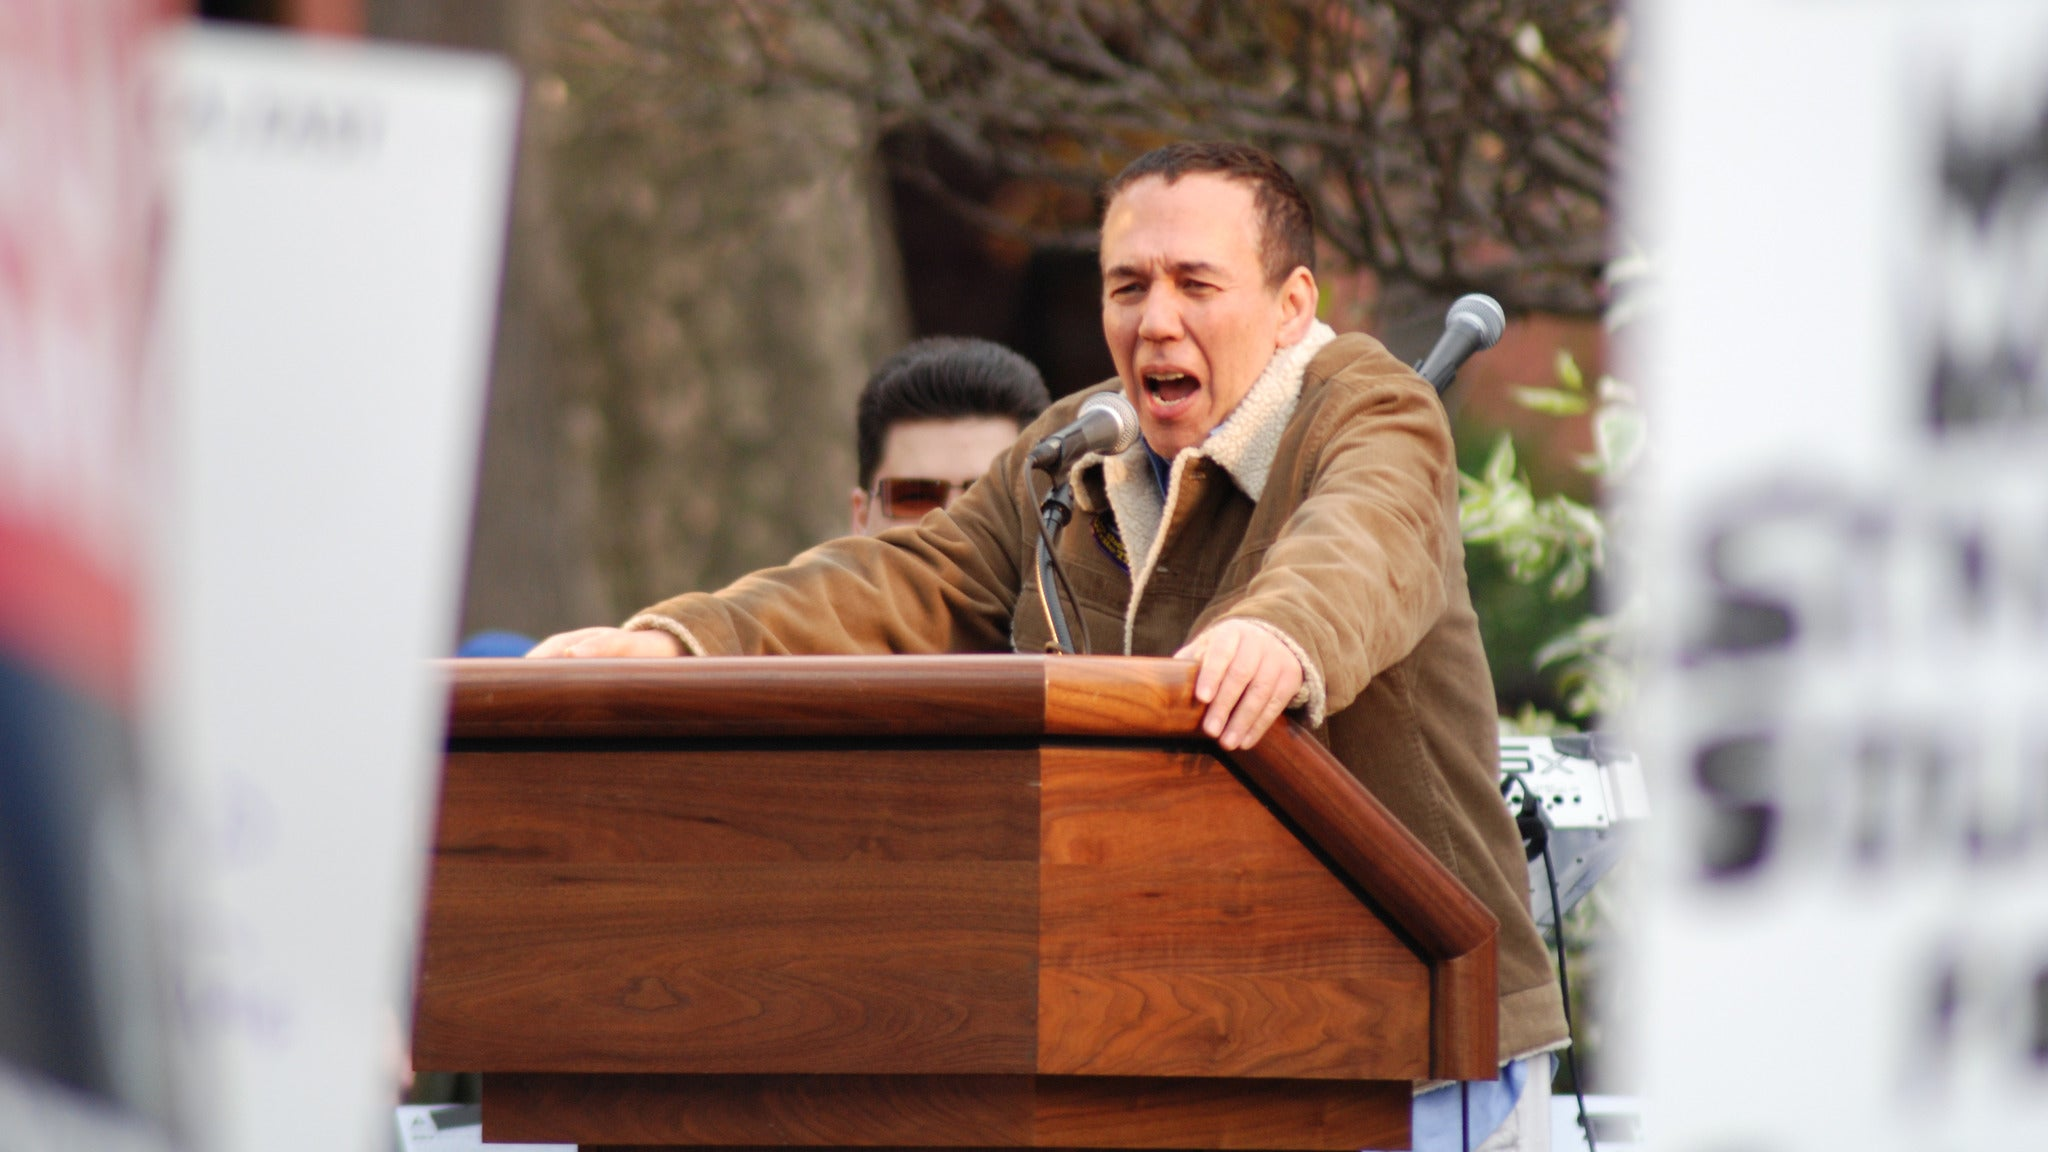 Gilbert Gottfried at Stanhope House